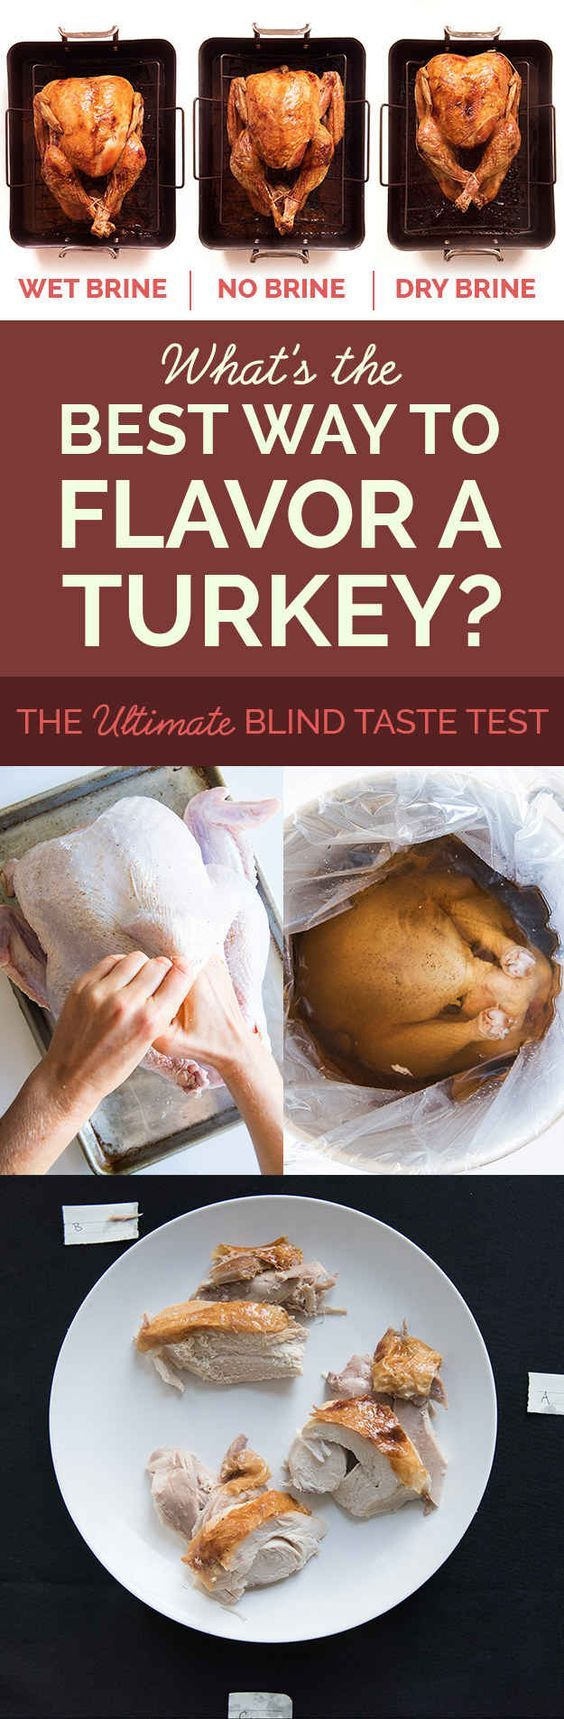 Here's Why You Shouldn't Brine Your Turkey Like Everyone Says To